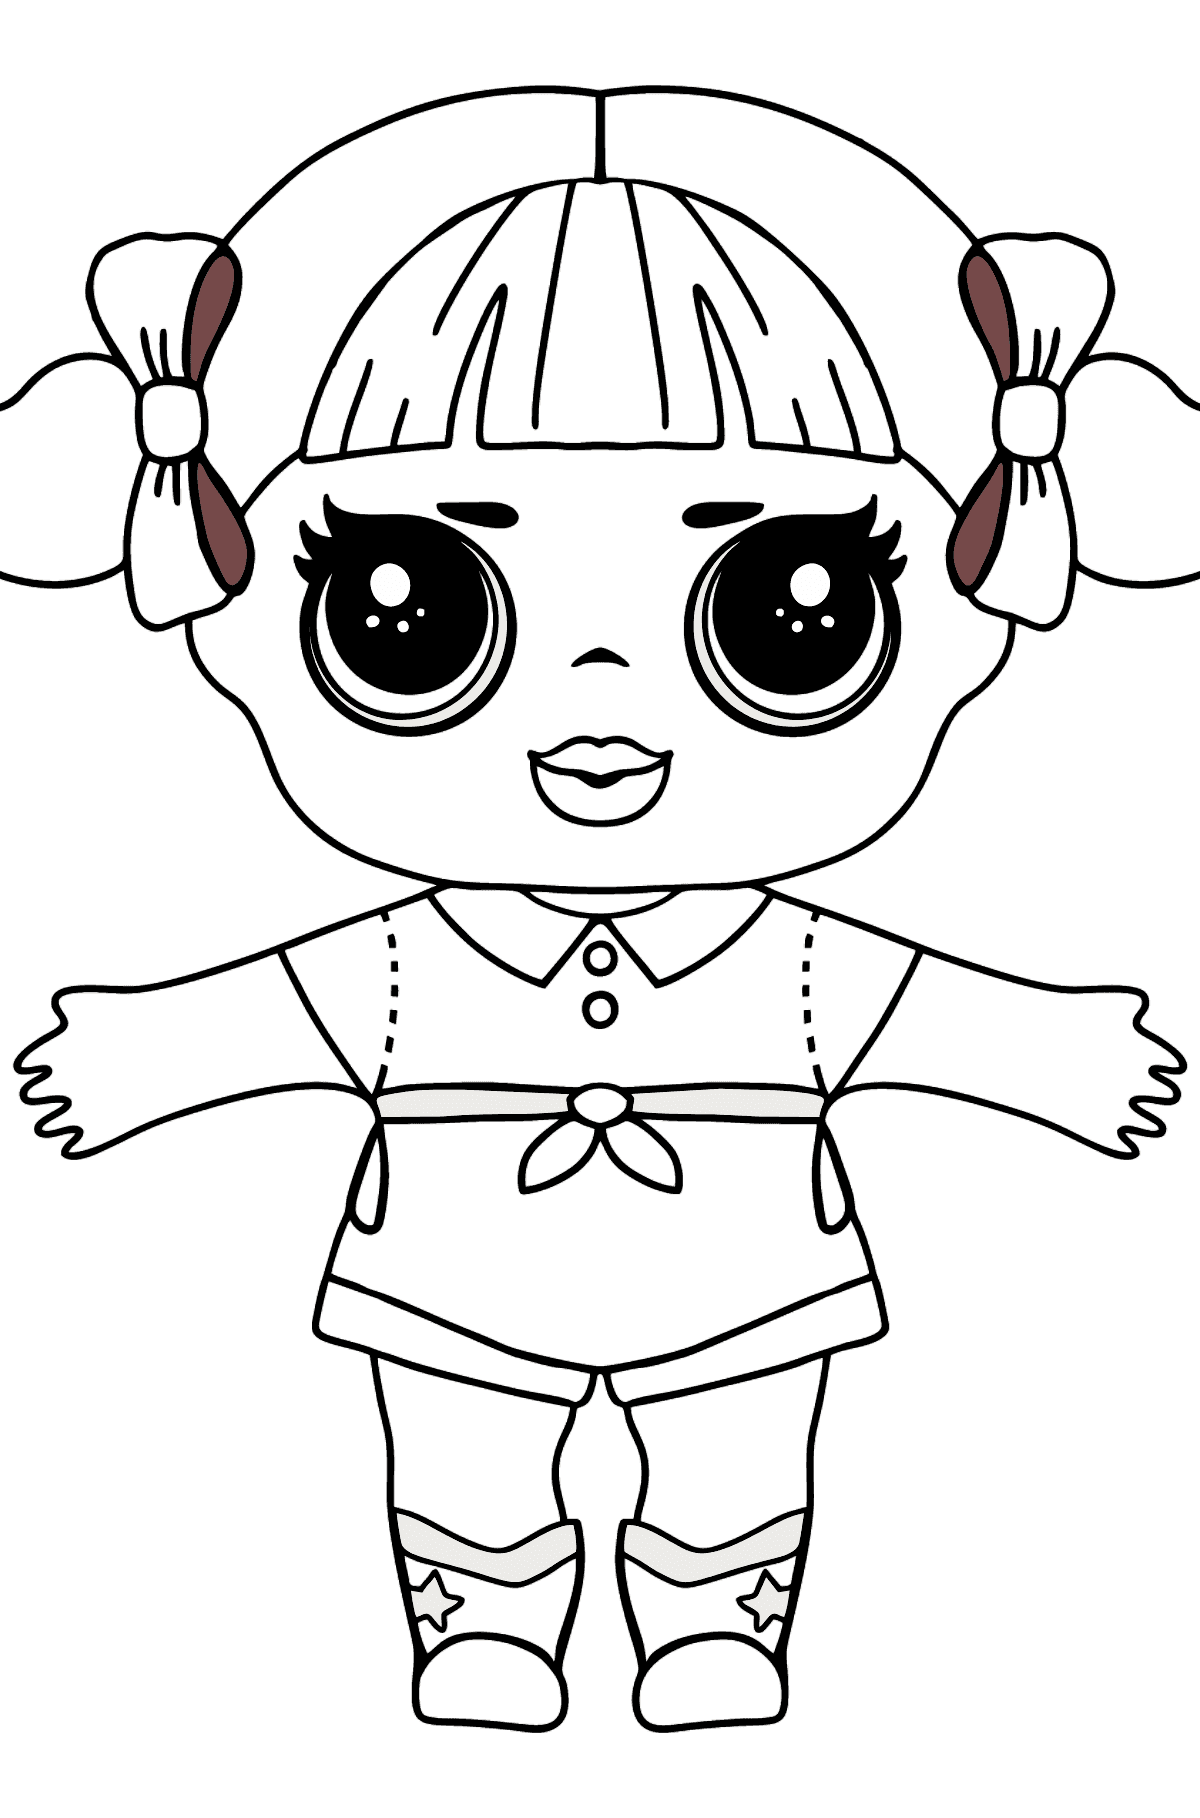 L.O.L. Surprise Doll Cheer Captain - Coloring Pages for Kids